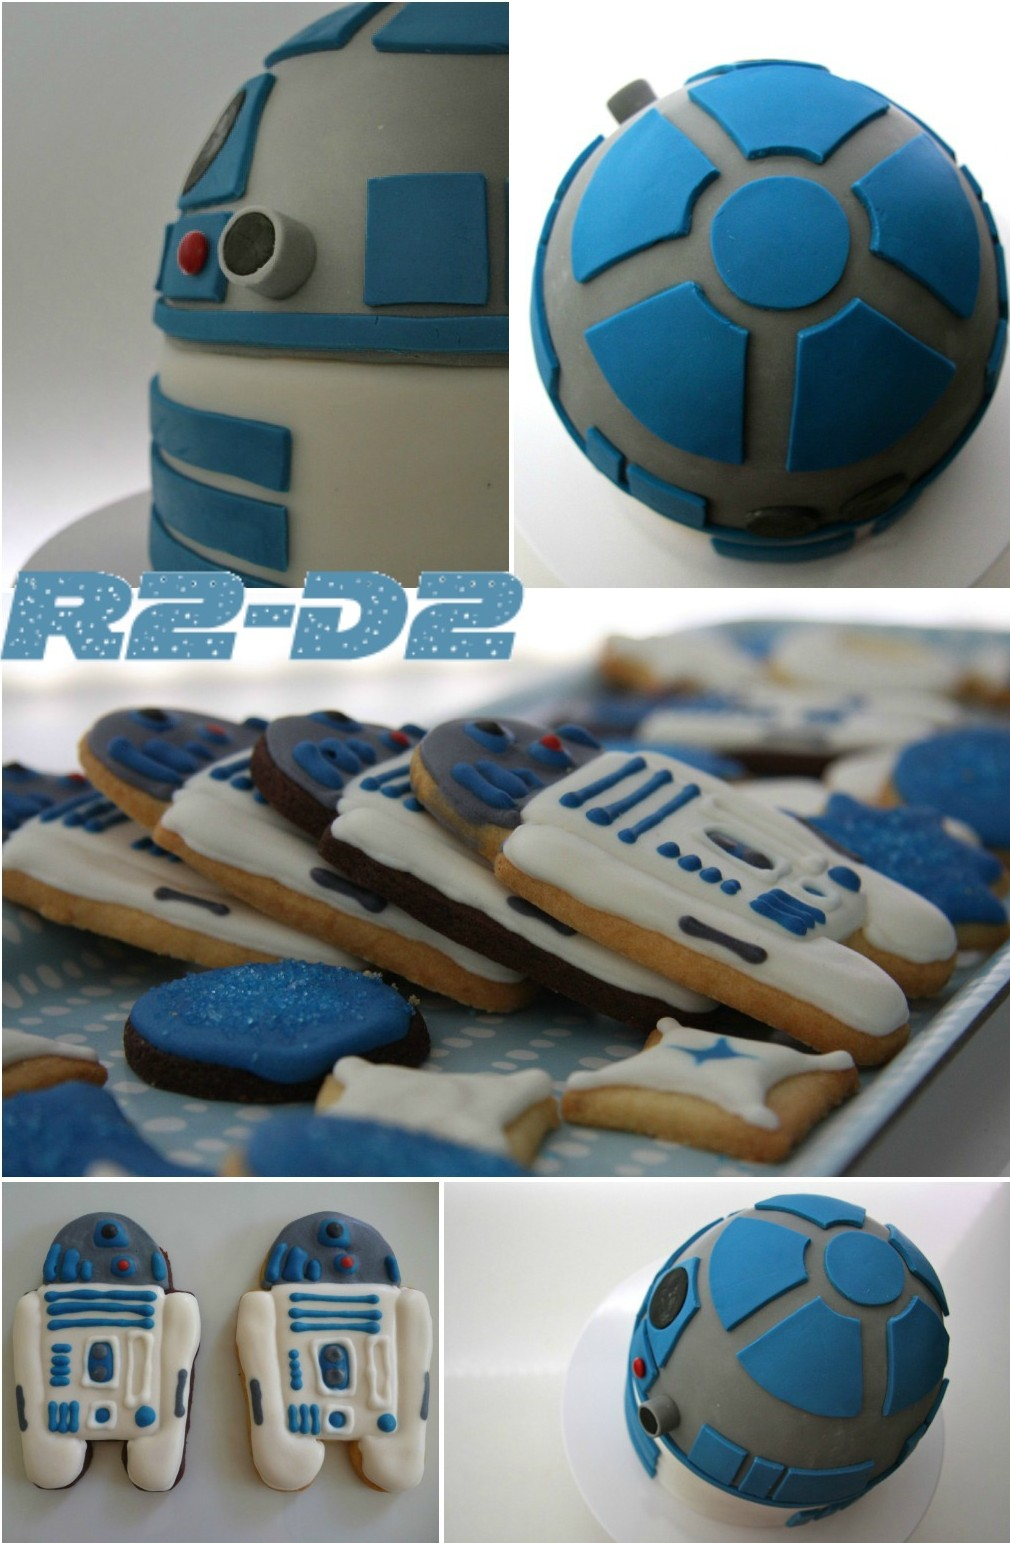 Star-Wars- simple r2d2 cake and cookies